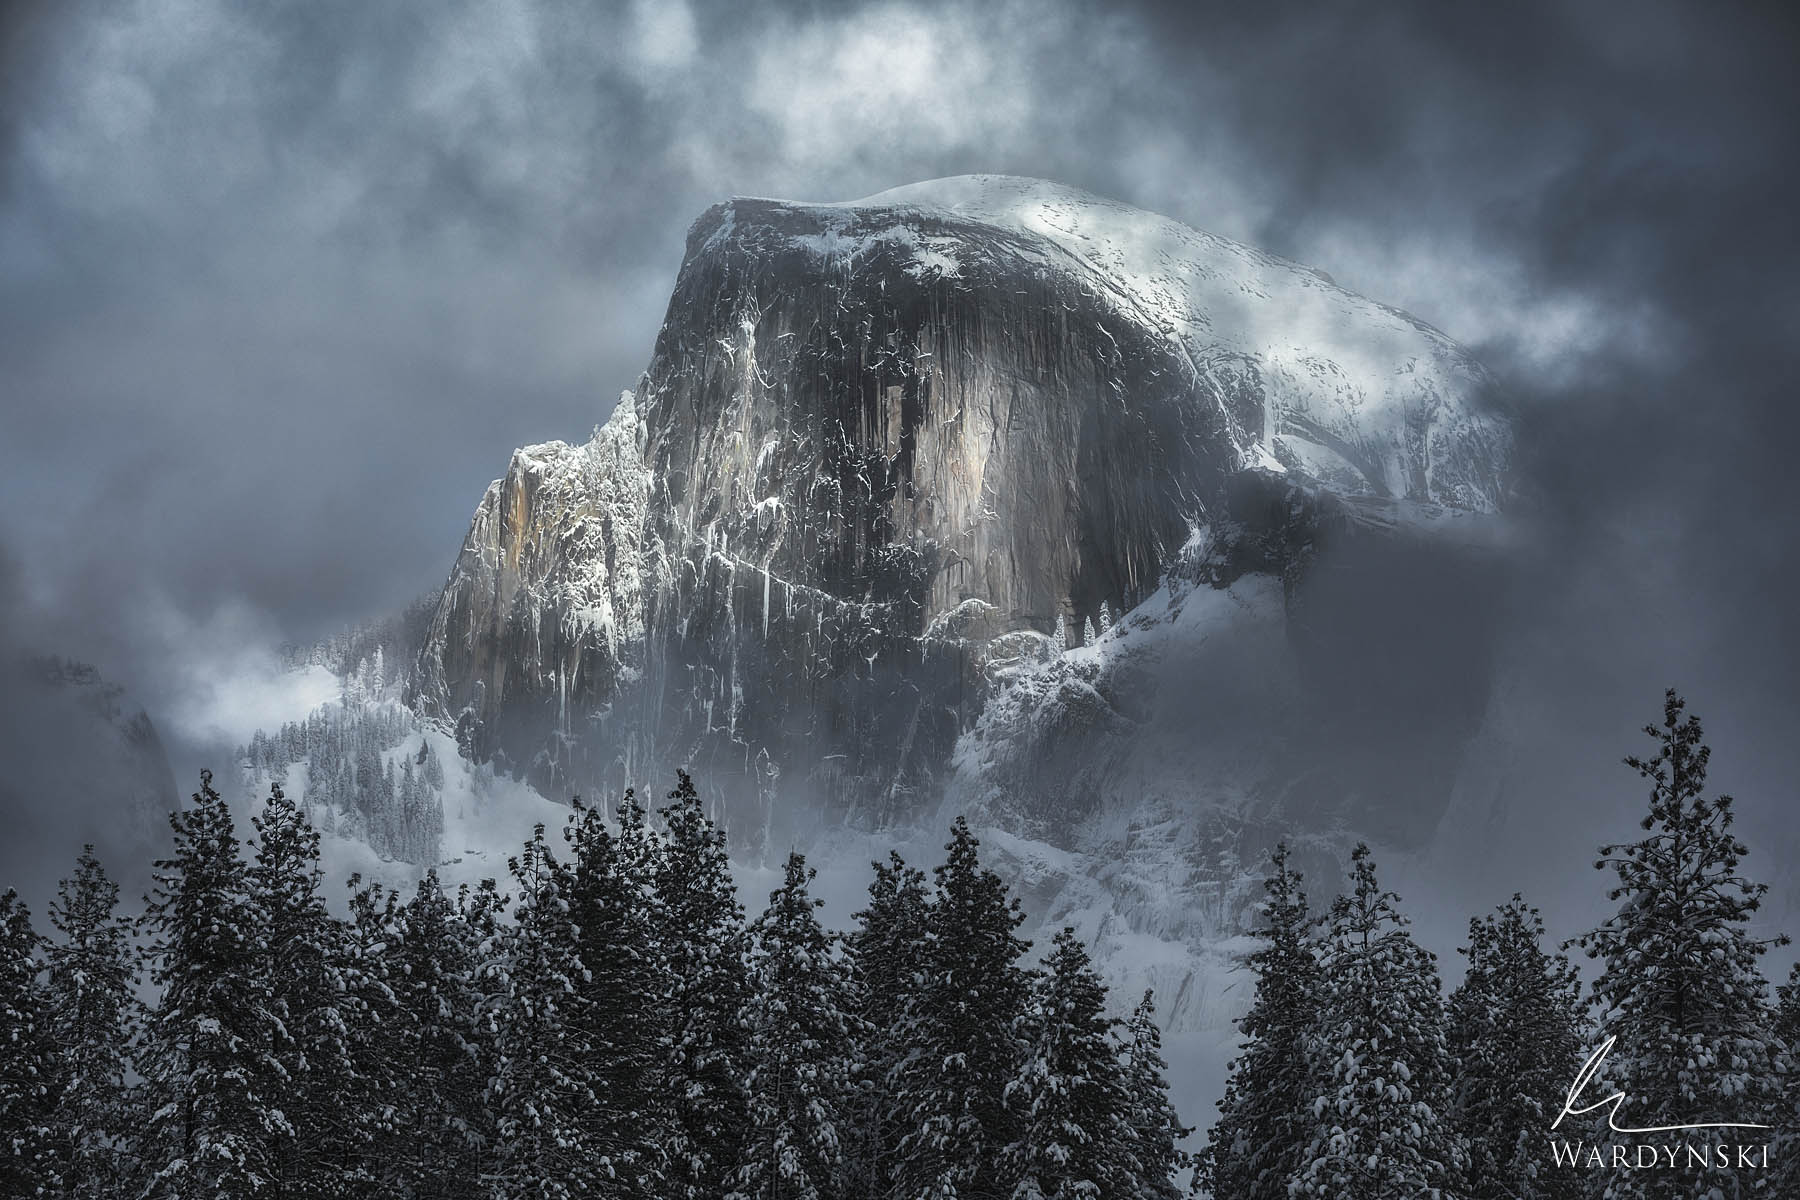 Fine Art Print | Limited Edition of 100  Halfdome is perhaps the most famous rock in the U.S. Every year millions of people flock...